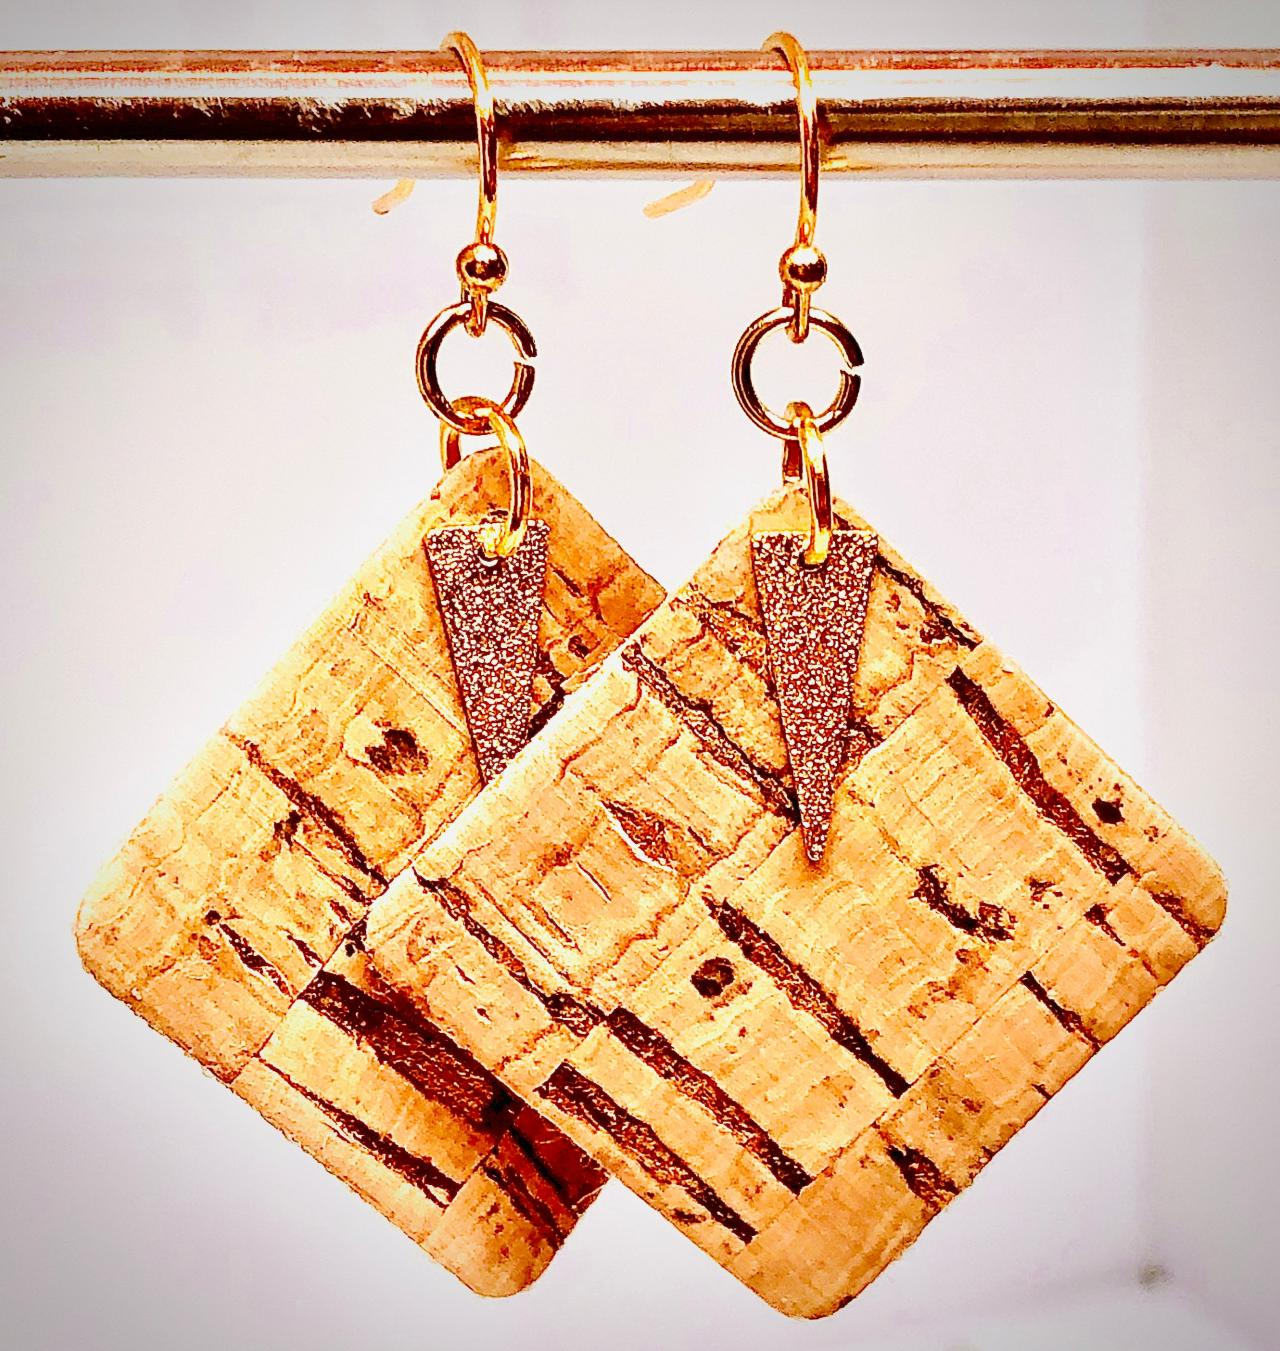 Cork Leather Square Earrings, Gold Splattered Cork, Gold Hammered Spear Pendant, Double-Sided, Dangle Earrings, Lightweight, Easy to Wear